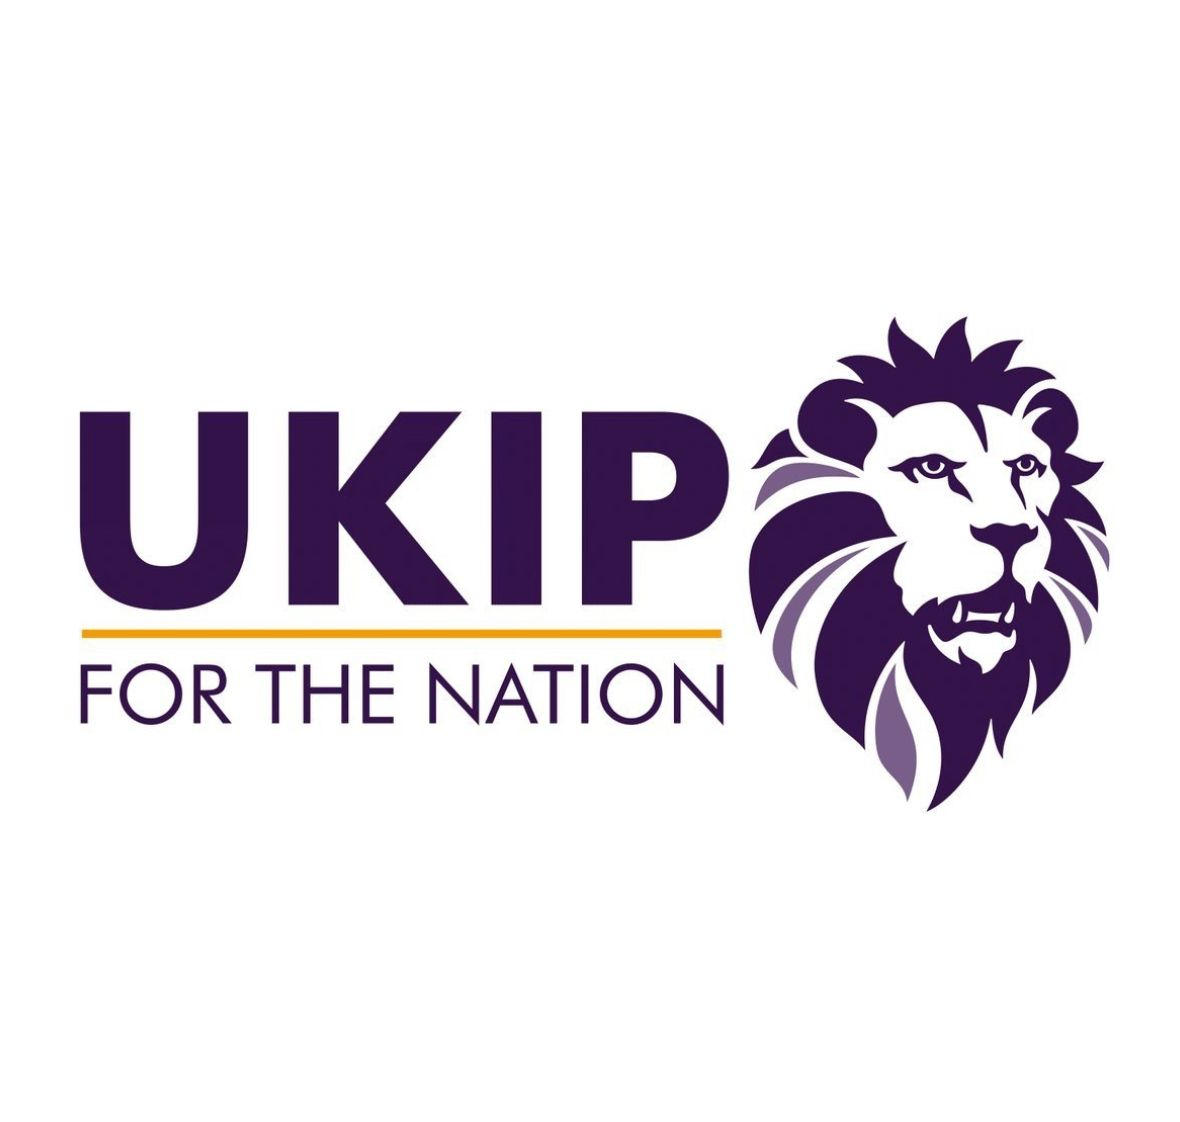 Ukip Have A New Logo And It Looks Awfully Similar To The Premier League's